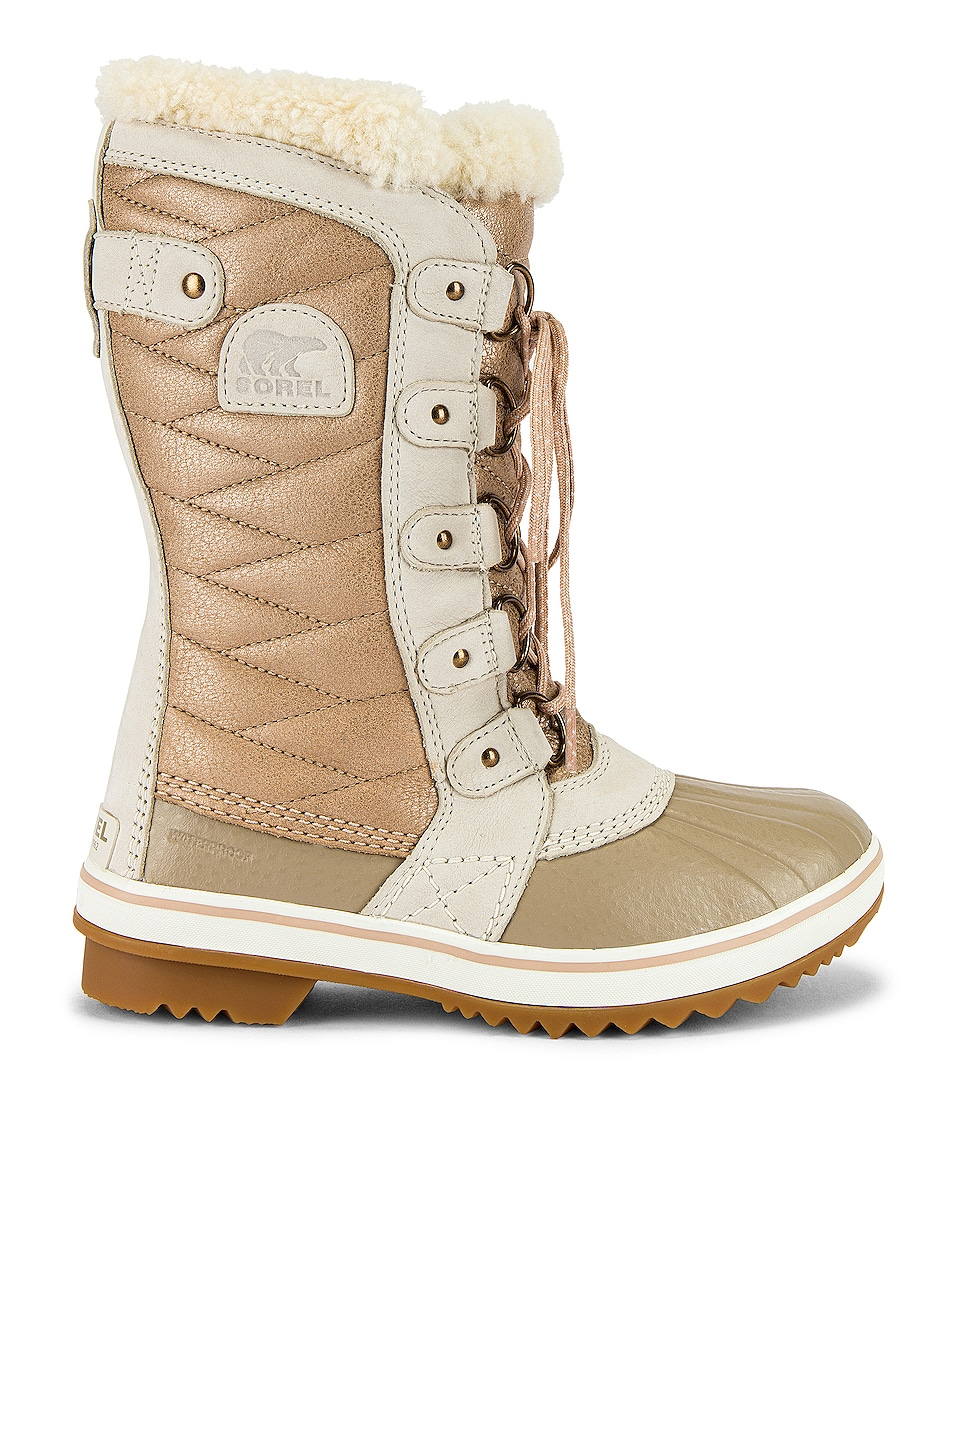 Sorel Tofino II Lux Boot in Natural Tan